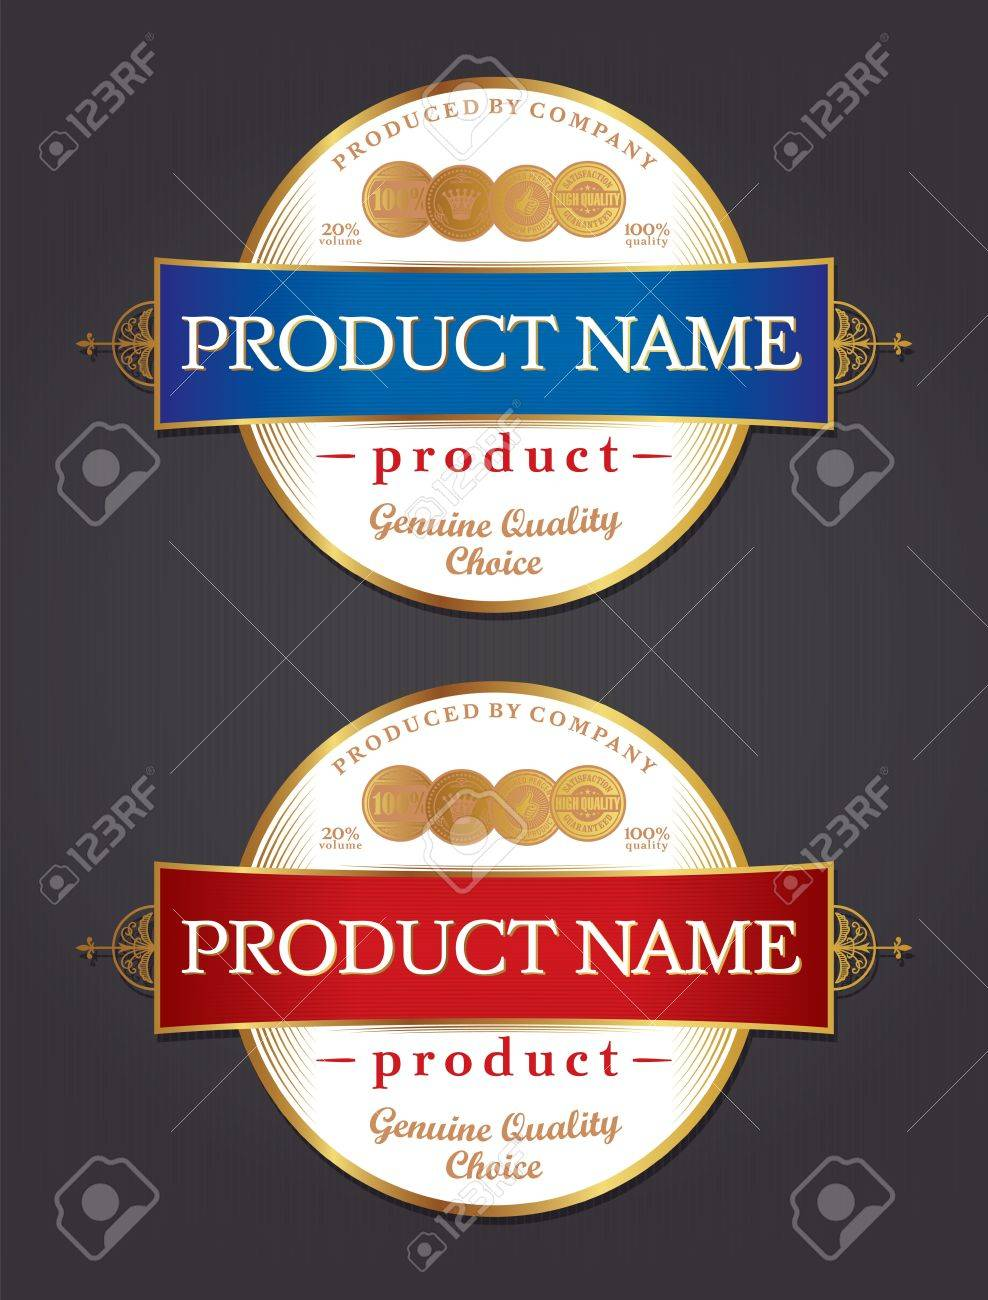 Product Label Design Template Retro Style Stock Vector   17286463